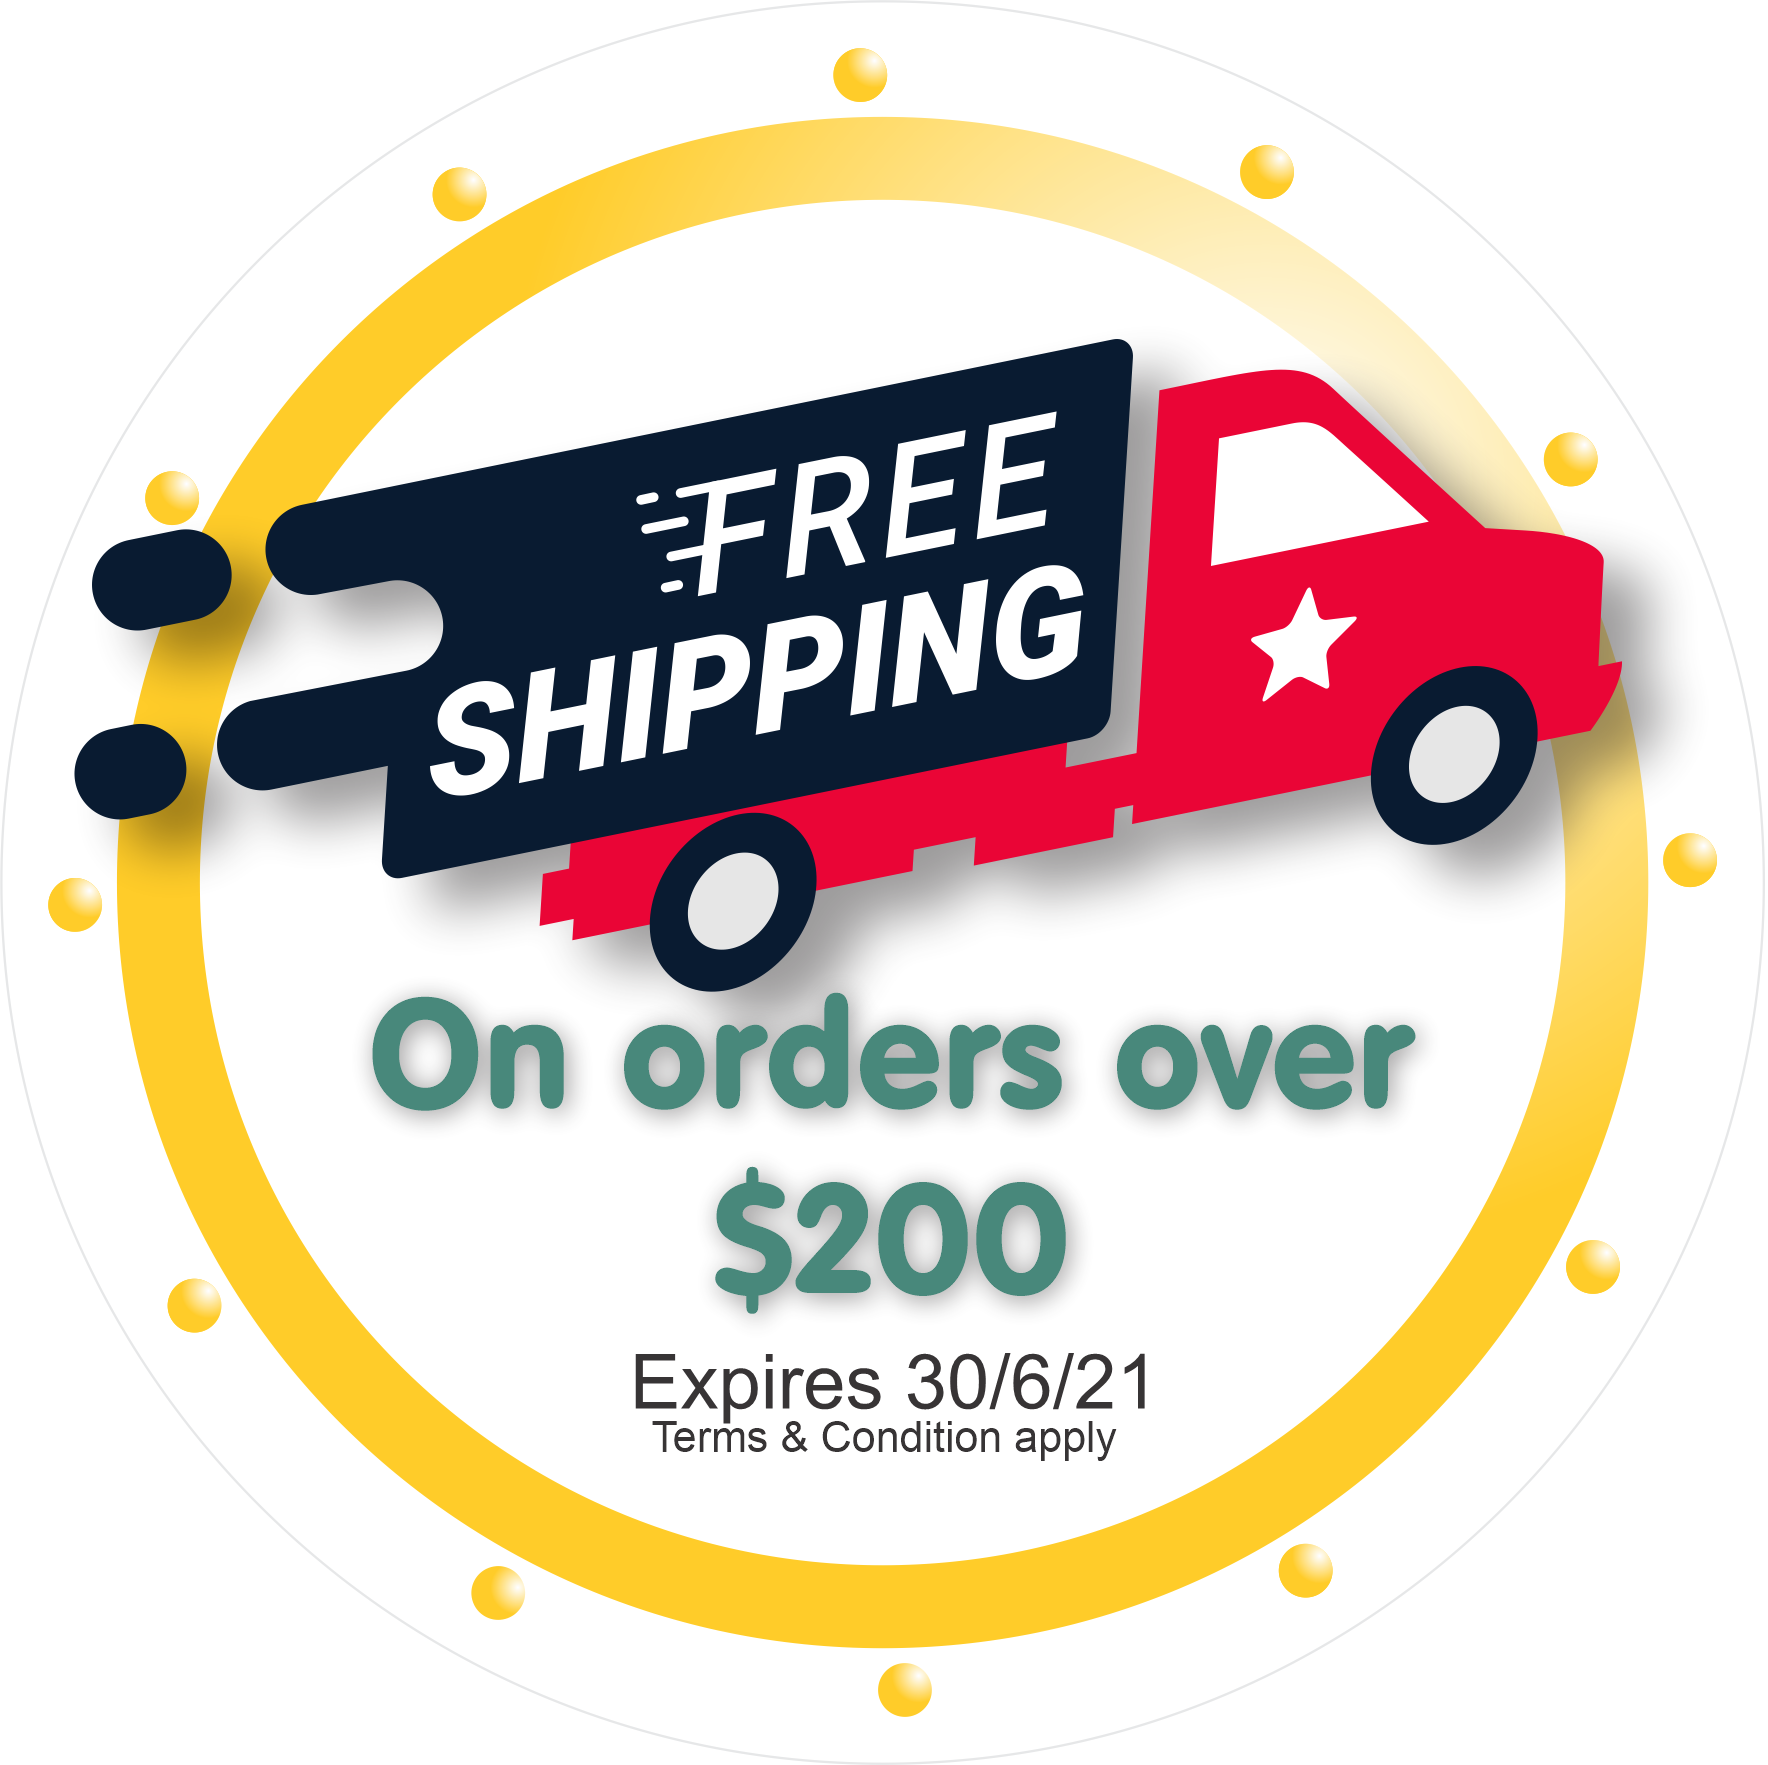 free-shipping-until-30-6-21-label-60mm.png